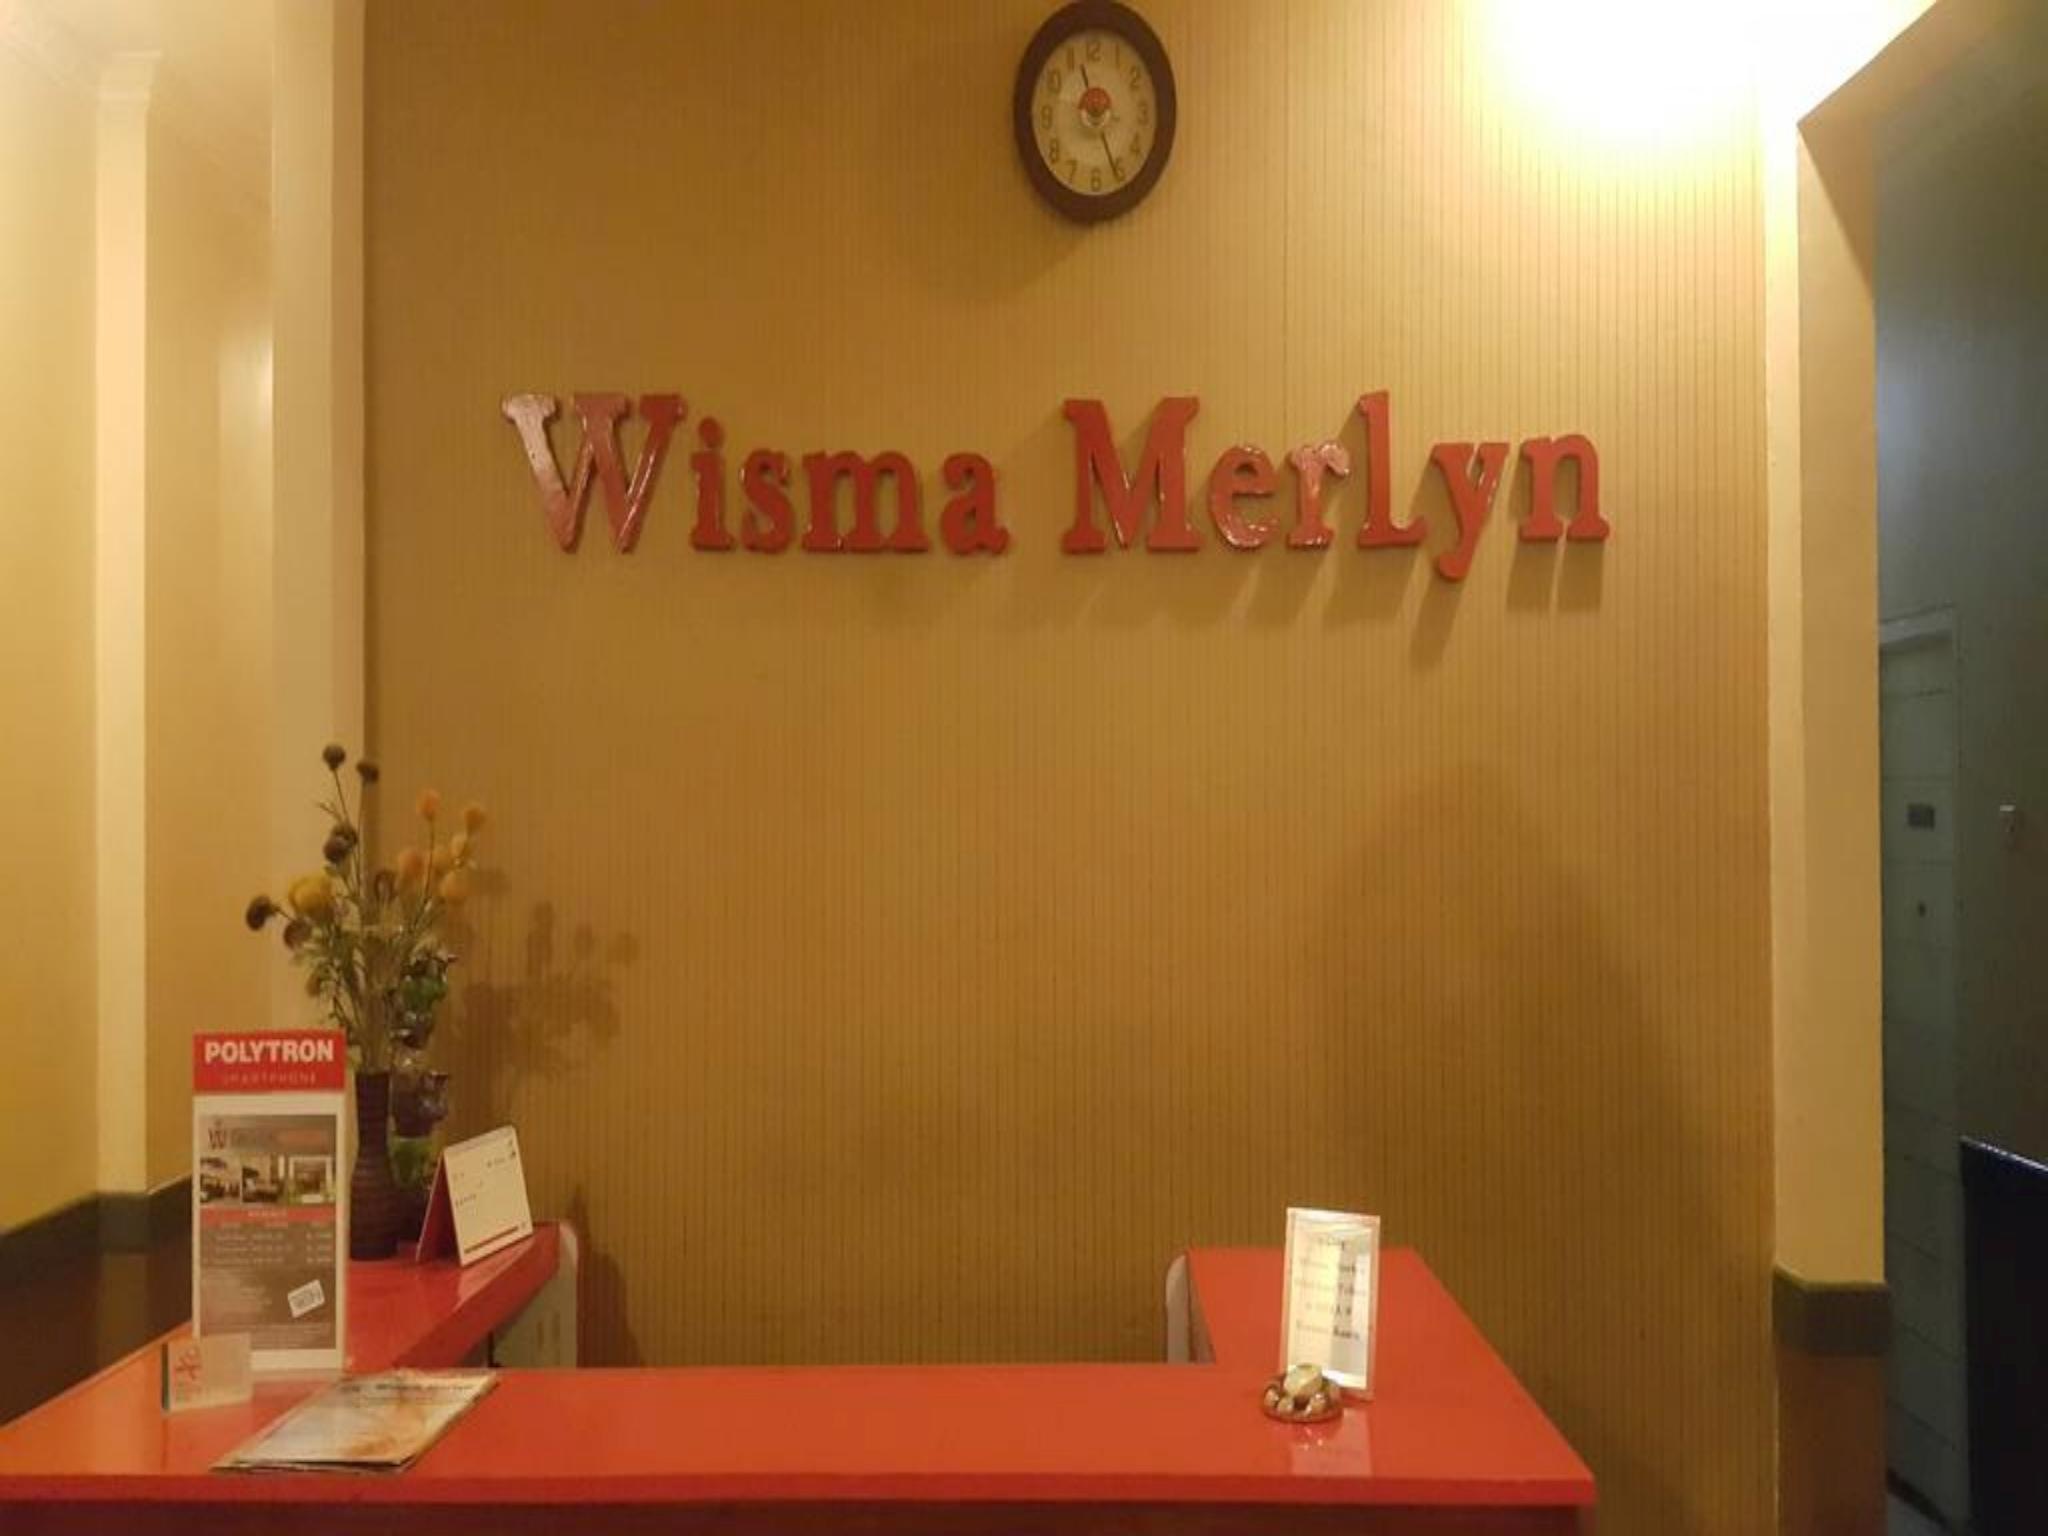 WISMA MERLYN picture